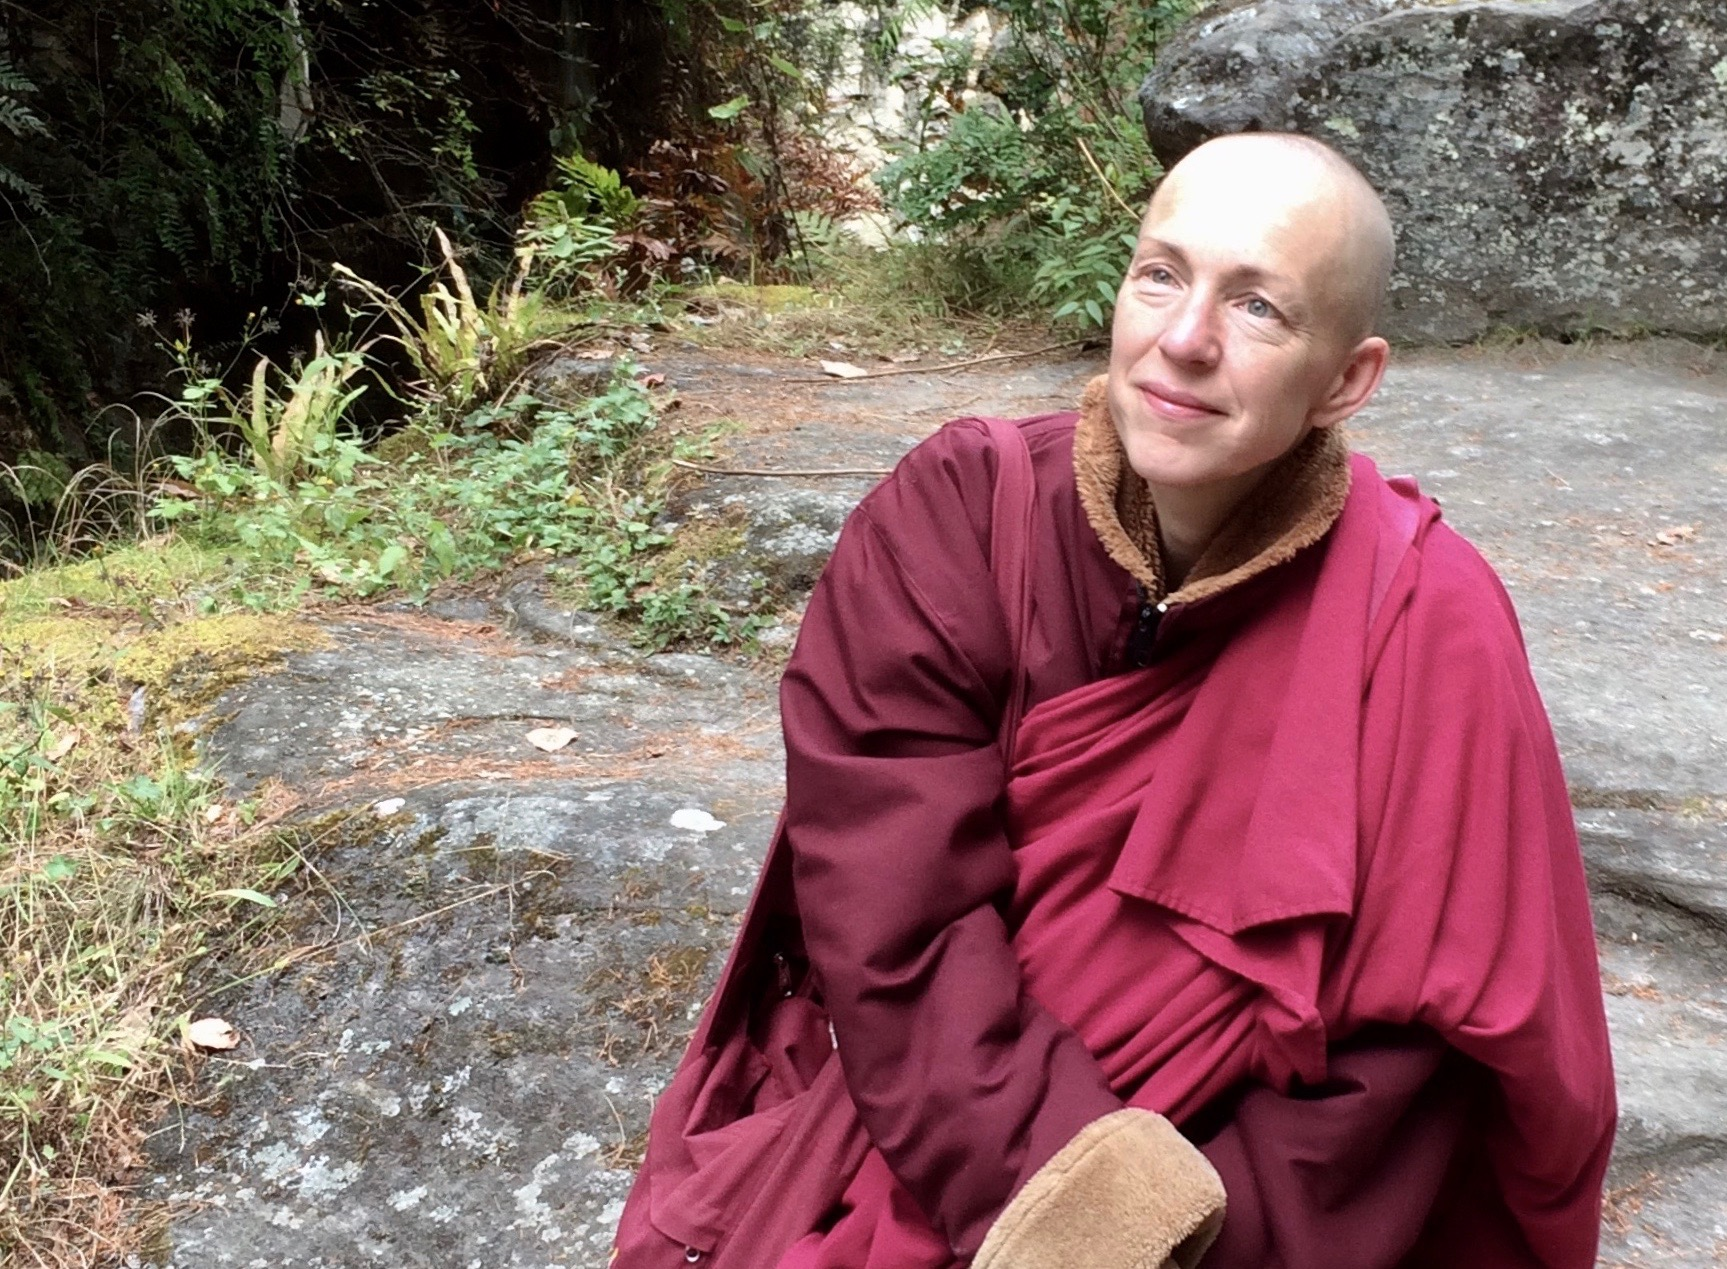 The Buddhist nun and author Emma Slade, also known as Ani Pema Deki, near Burning Lake in the Tang Valley, central Bhutan, on Oct. 20, 2017